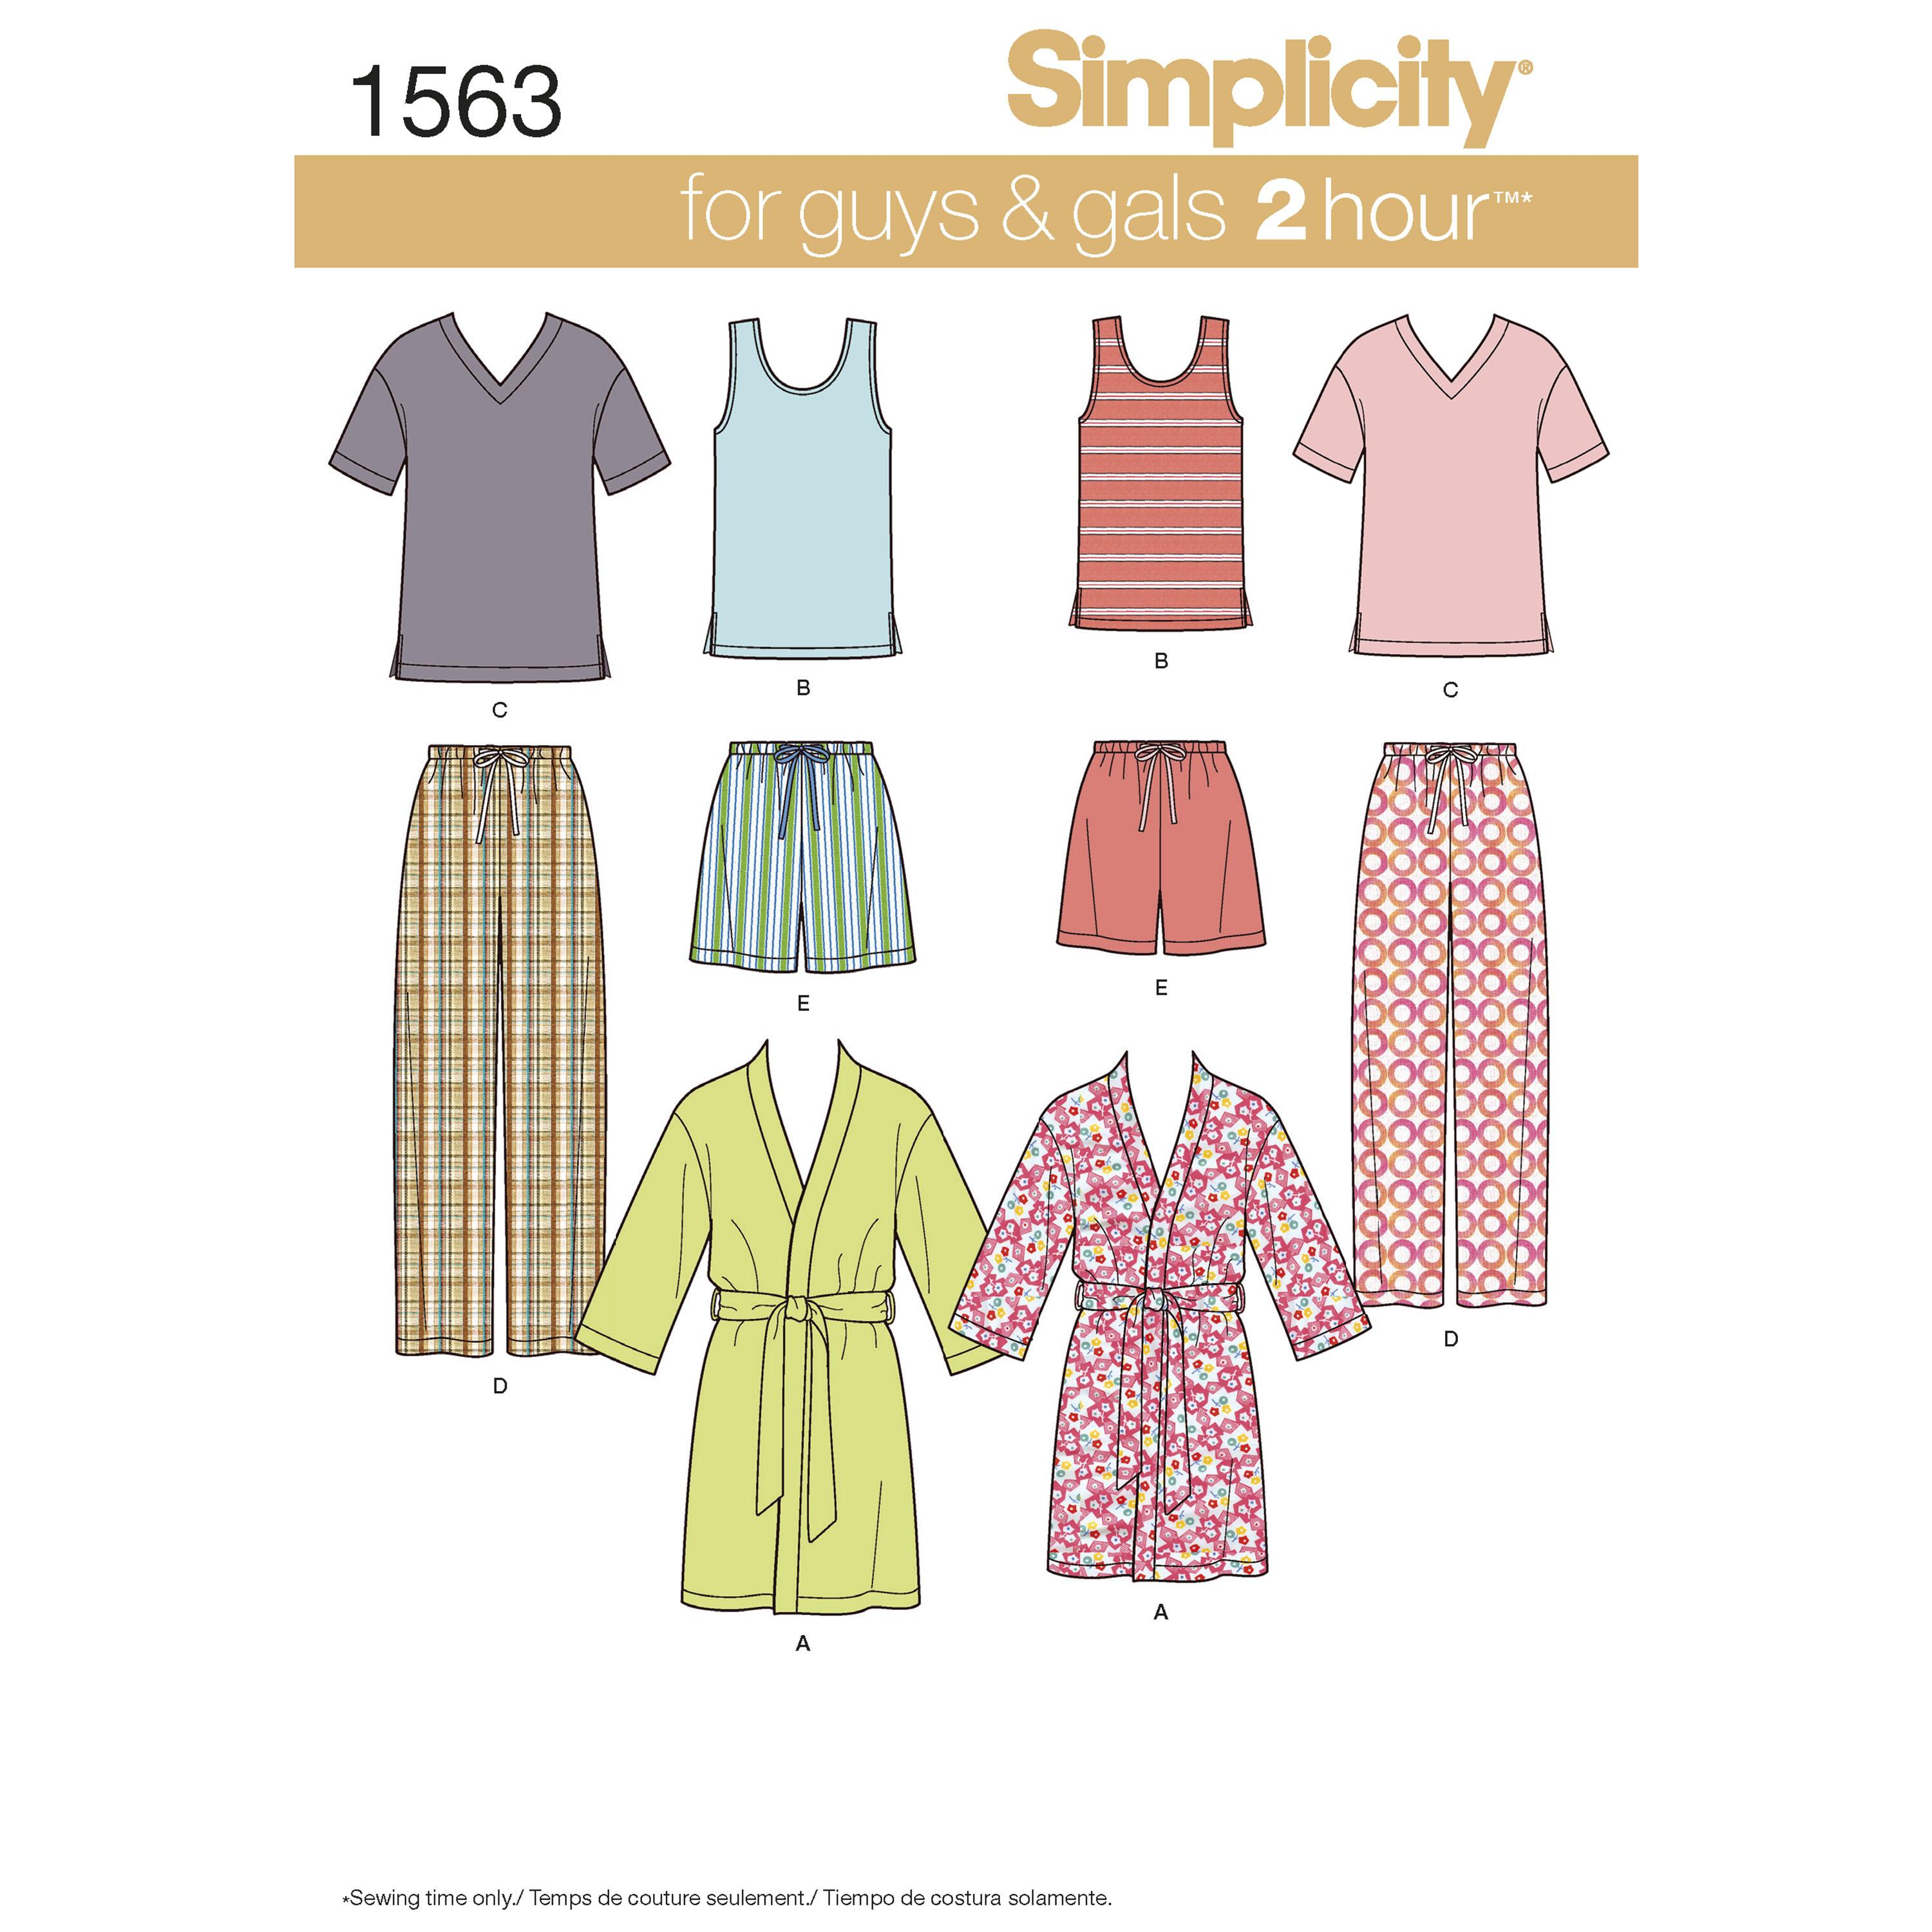 Simplicity S1563 Women's Men's and Teens' Sleepwear